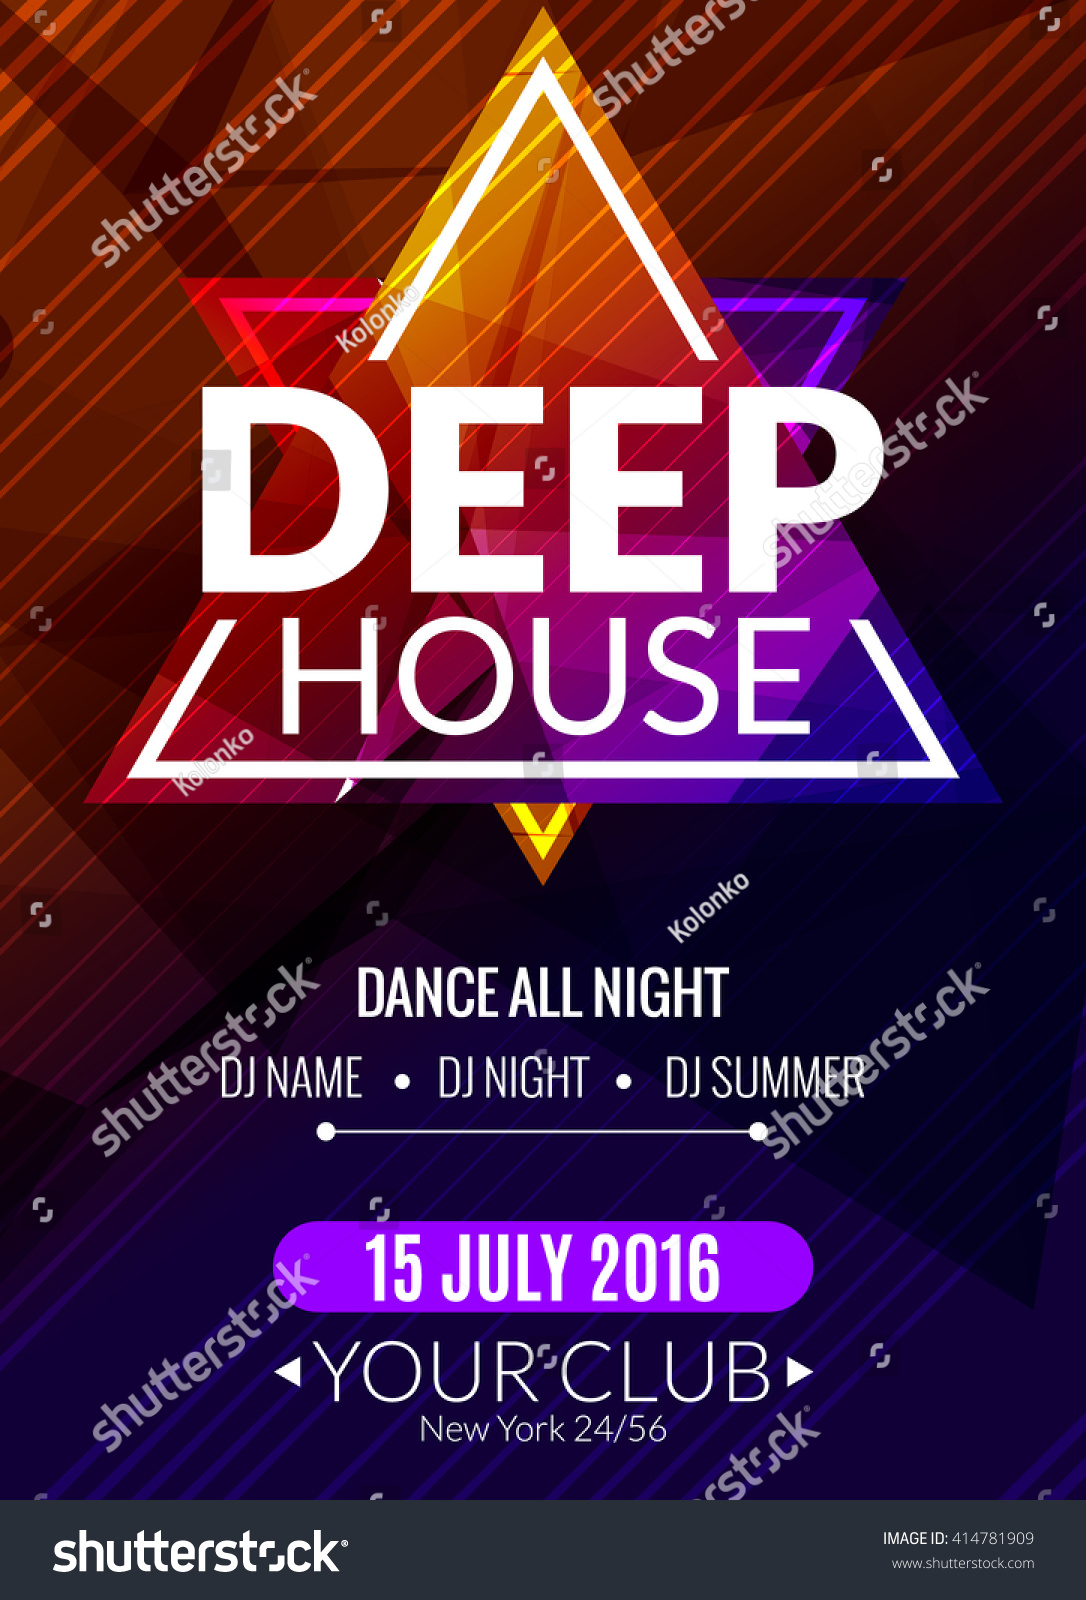 Club electronic deep house music poster stock vector for Trance house music